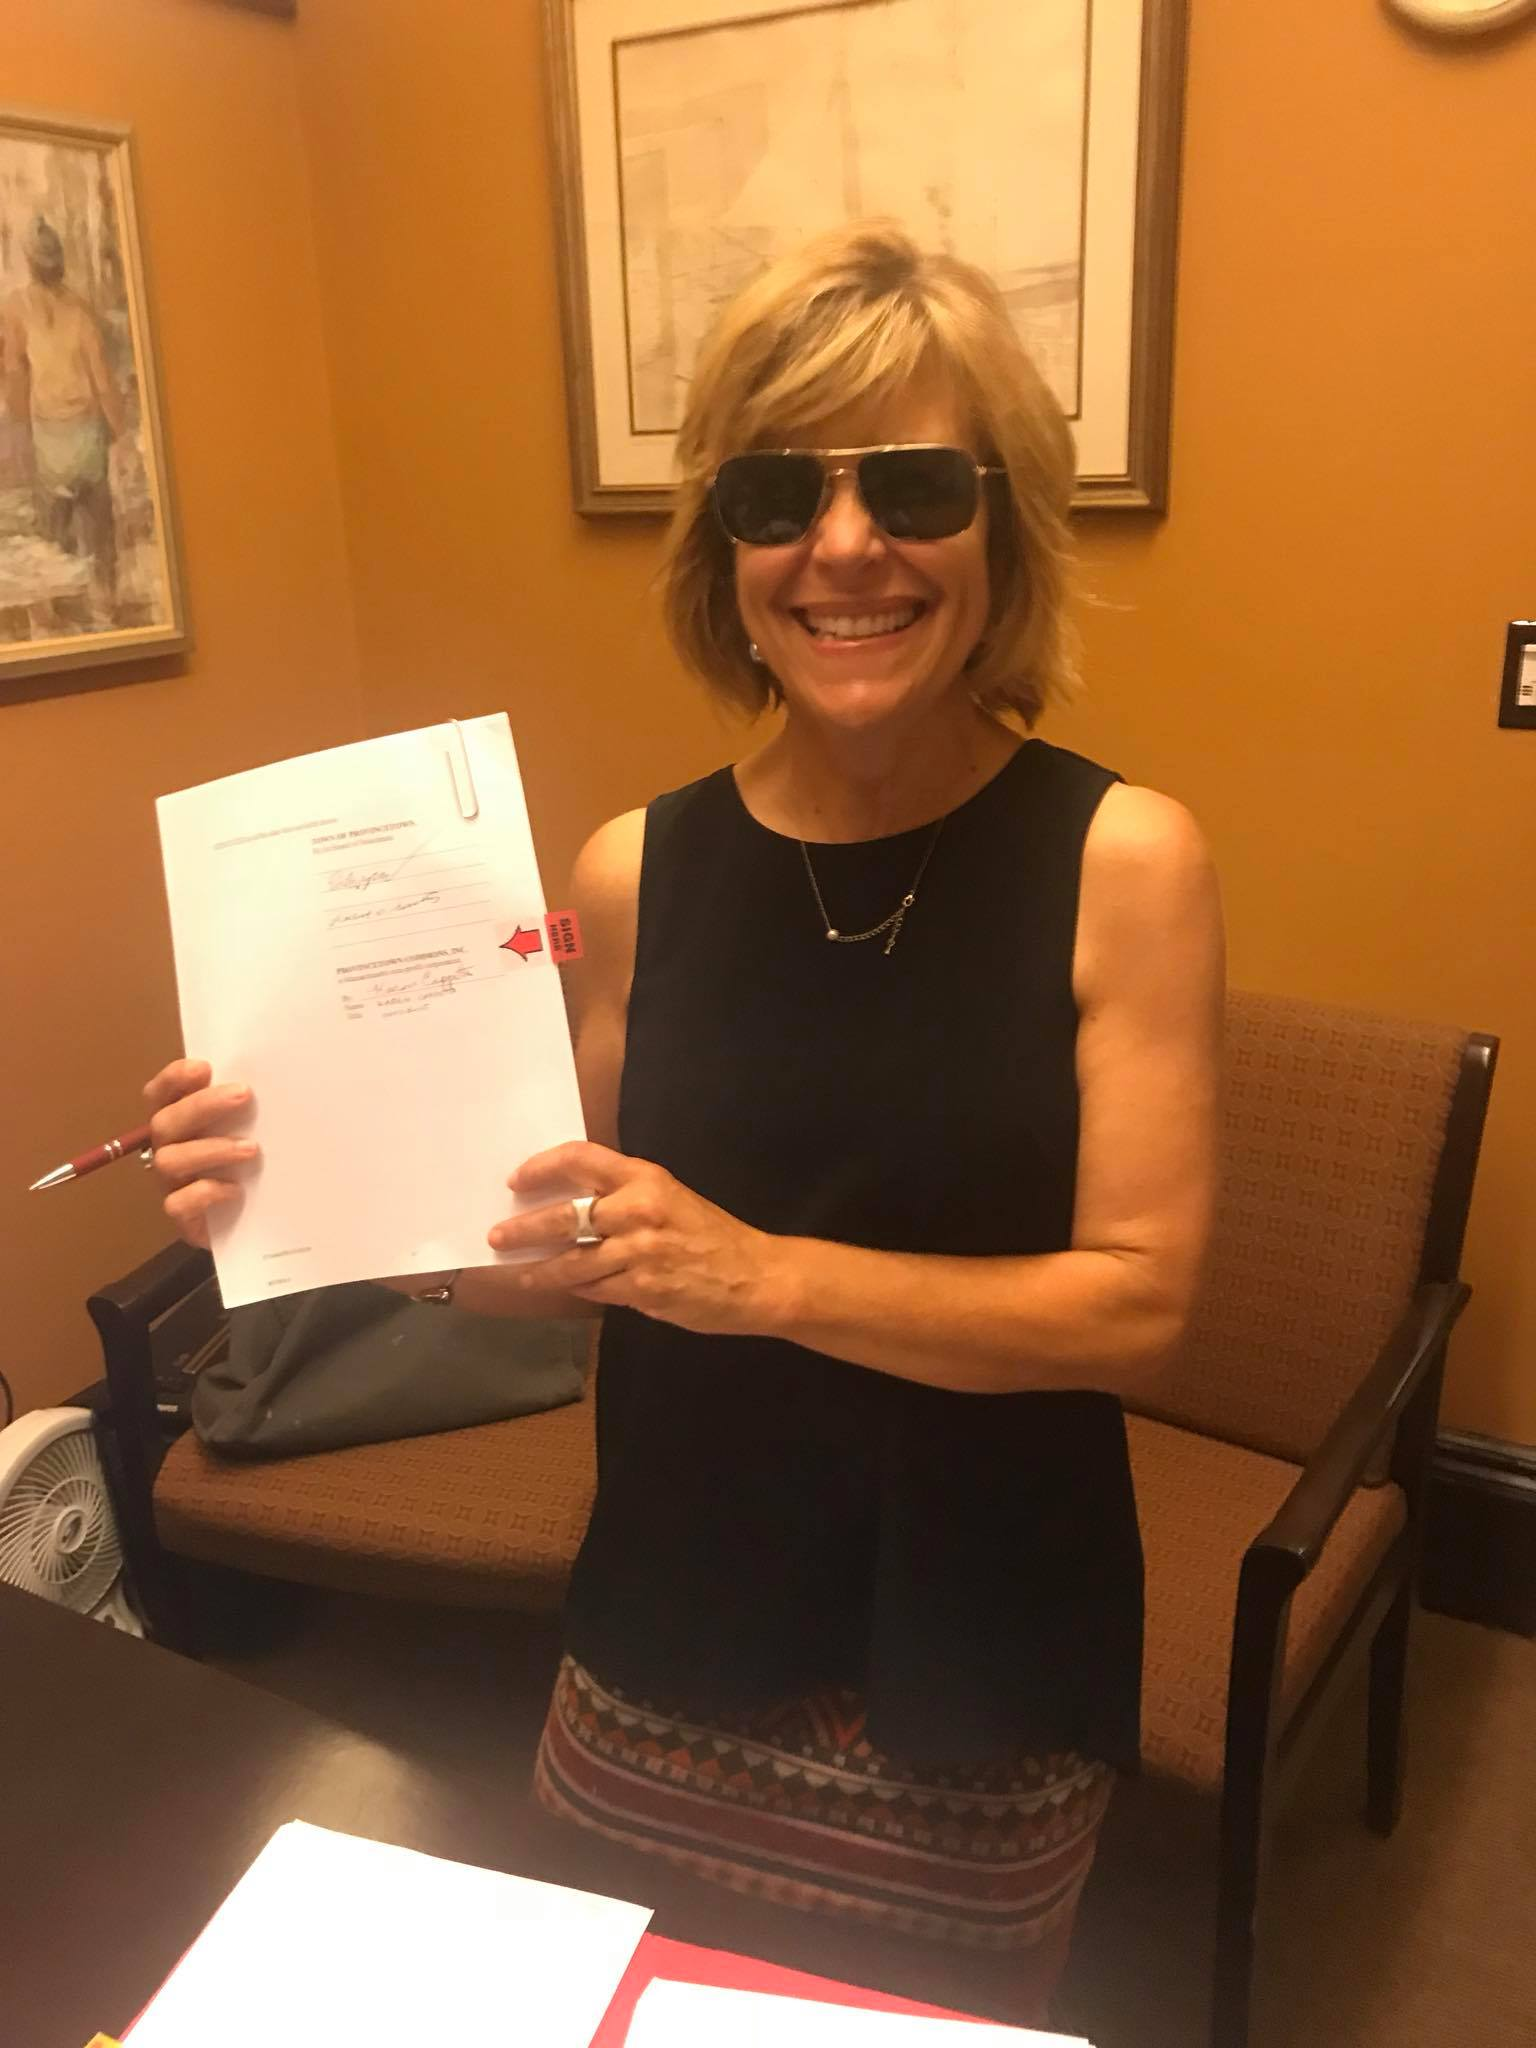 Provincetown Commons board president Karen Cappotto at Town Hall with the signed 99-year lease for the old Community Center building at 46 Bradford Street.